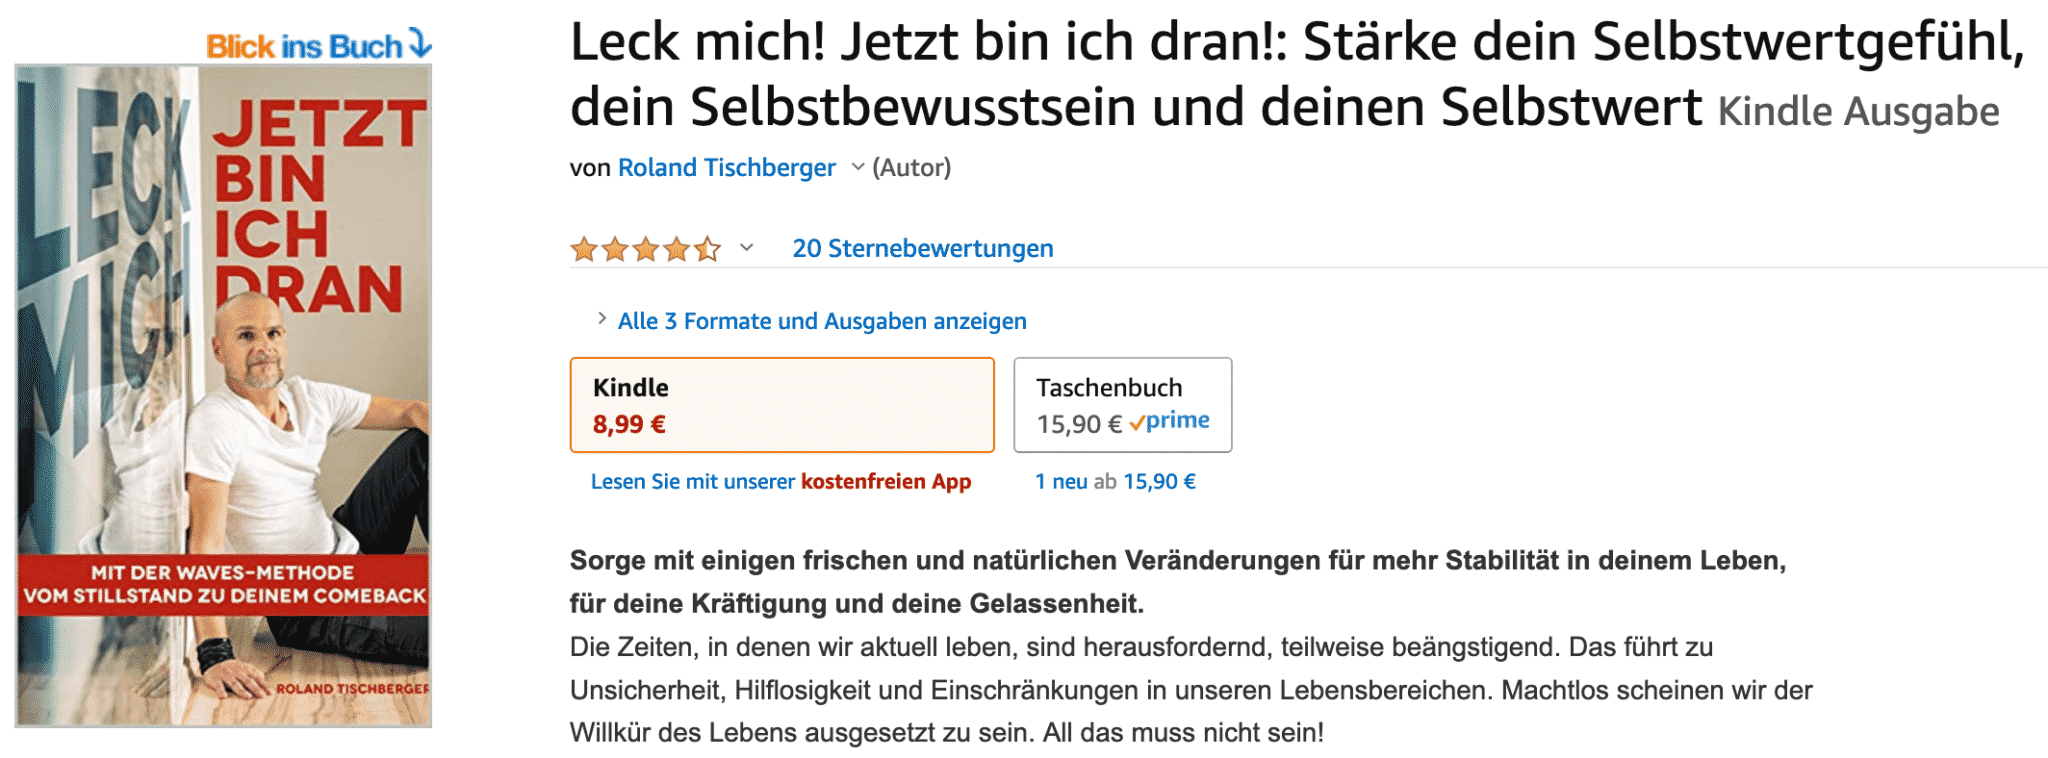 Die WAVES-Methode von burnoutside bei Amazon